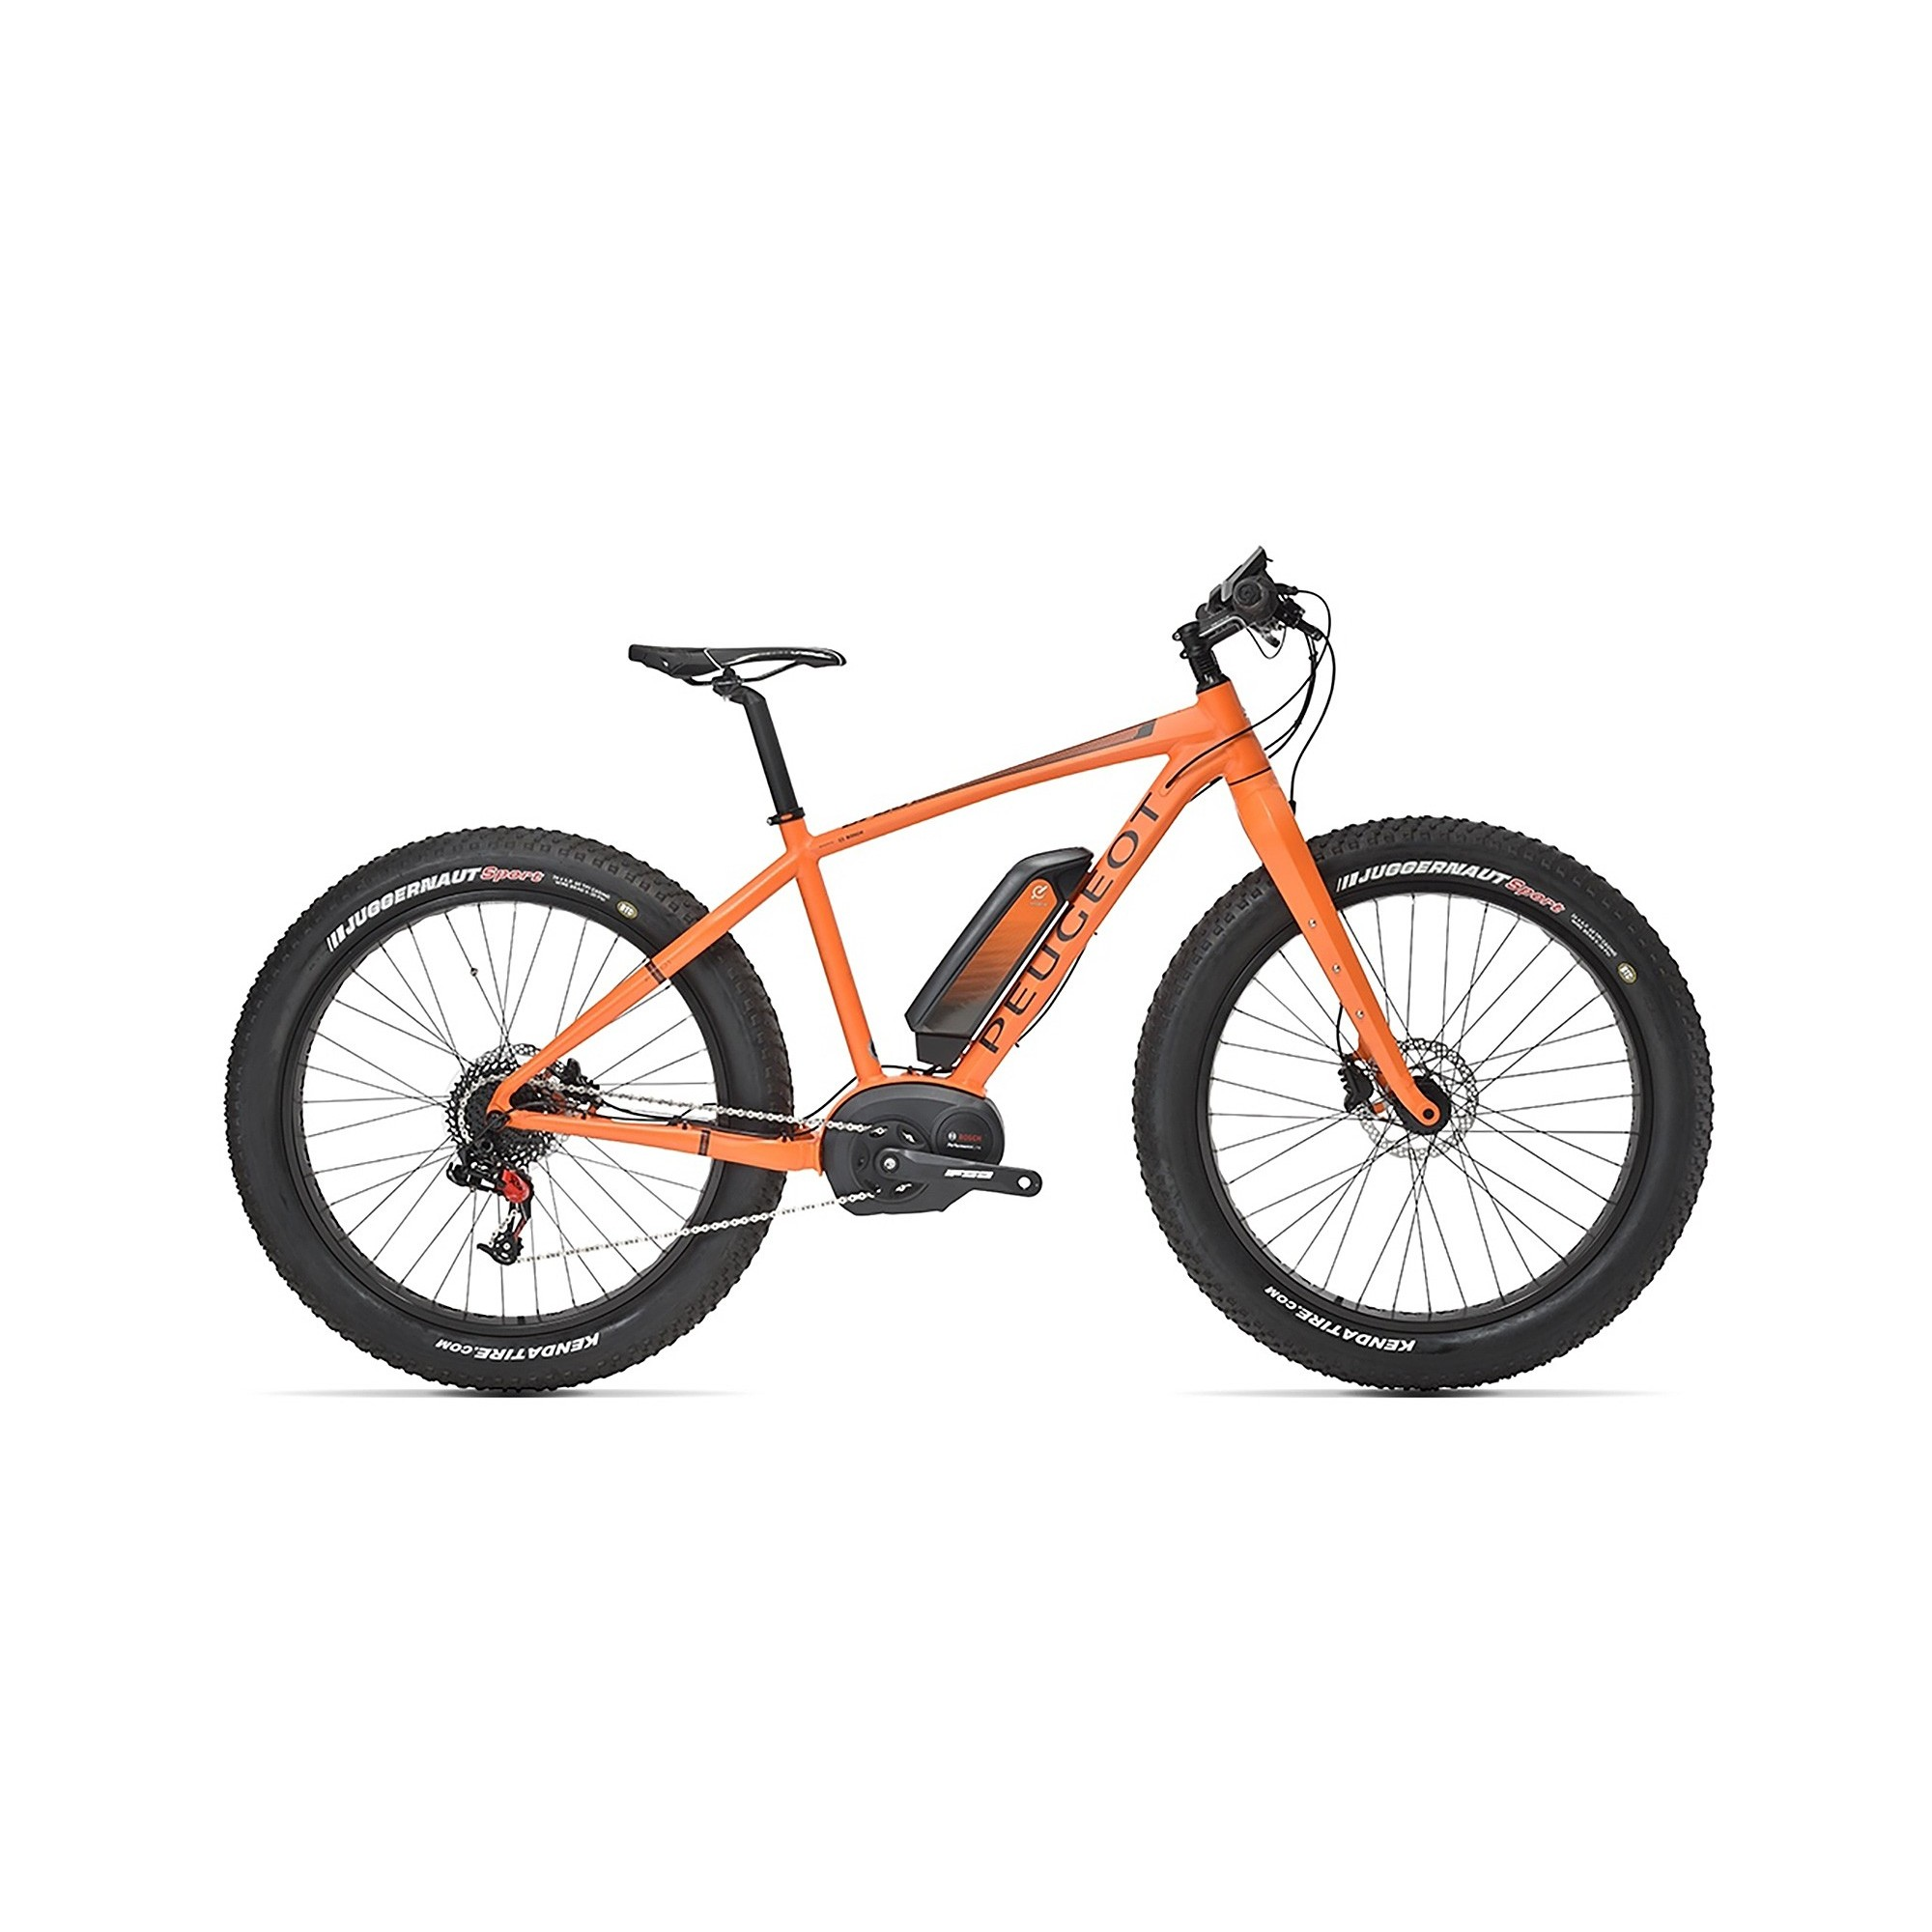 vtt lectrique peugeot efb01 fatbike 2018 v lozen v lo lectrique vttae en bretagne. Black Bedroom Furniture Sets. Home Design Ideas